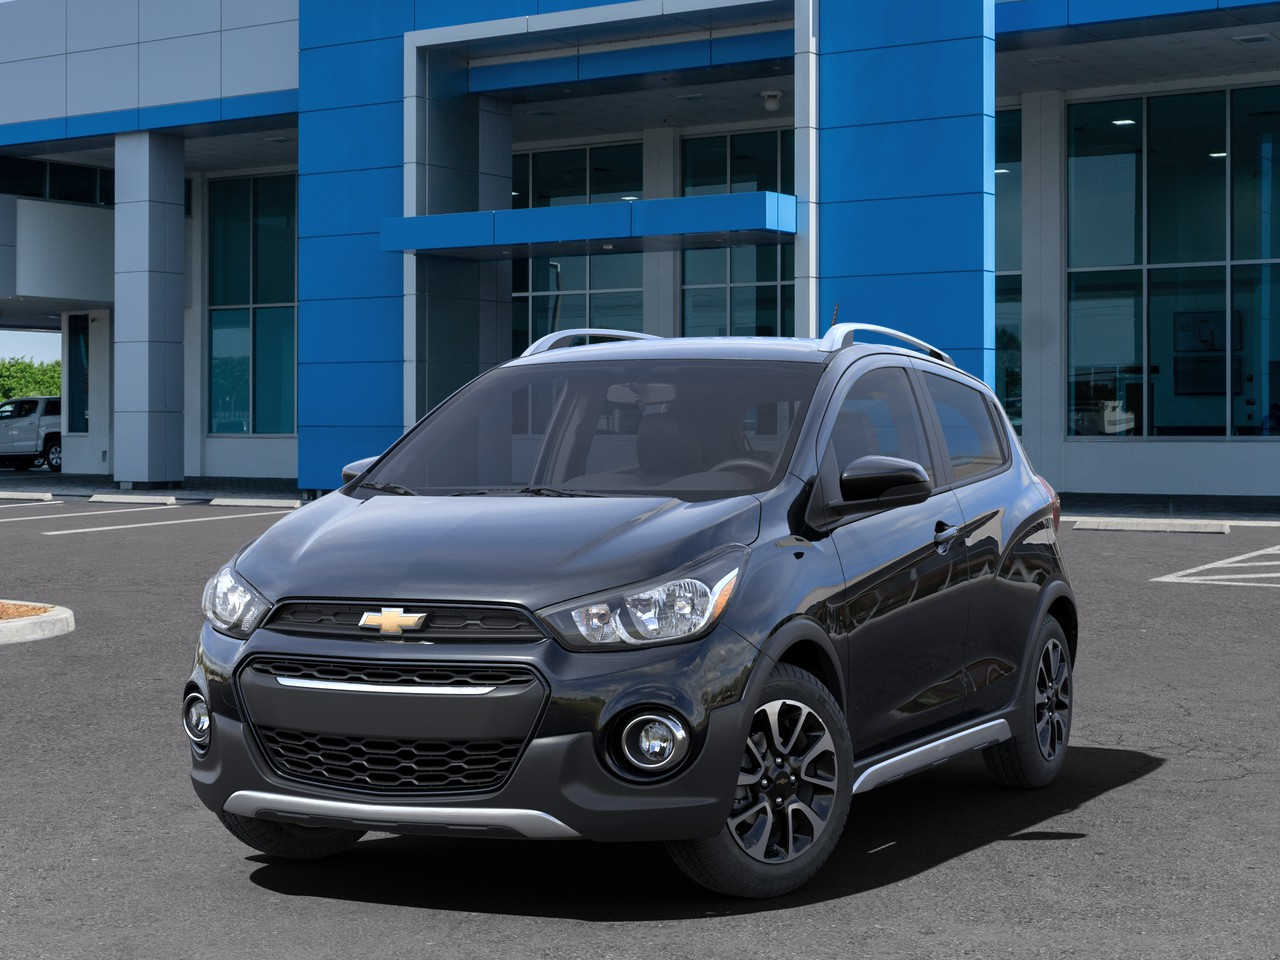 New 2021 Chevrolet Spark ACTIV Automatic FRONT WHEEL DRIVE Hatchback